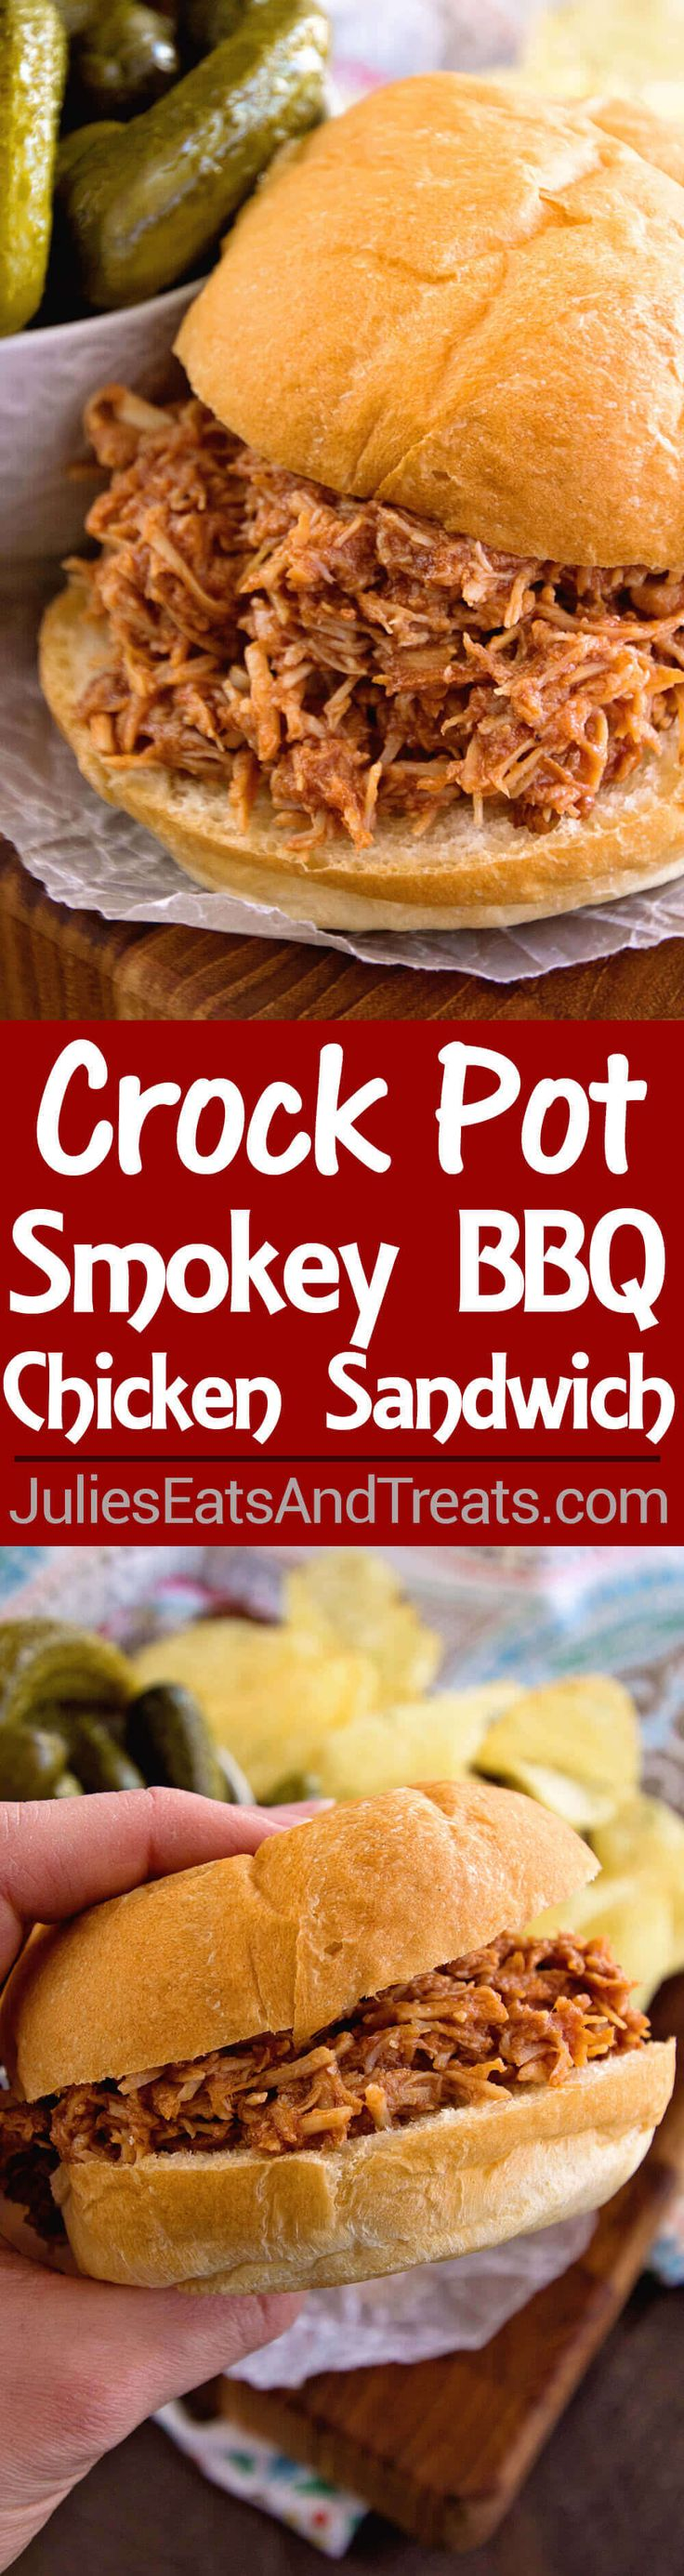 Crock Pot Smokey BBQ Shredded Chicken Sandwiches~ Easy, Shredded Chicken Sandwiches in Your Slow Cooker! Tender, Moist and Delicious Flavored with Liquid Smoke and Smothered in Barbecue Sauce! ~ https://www.julieseatsandtreats.com